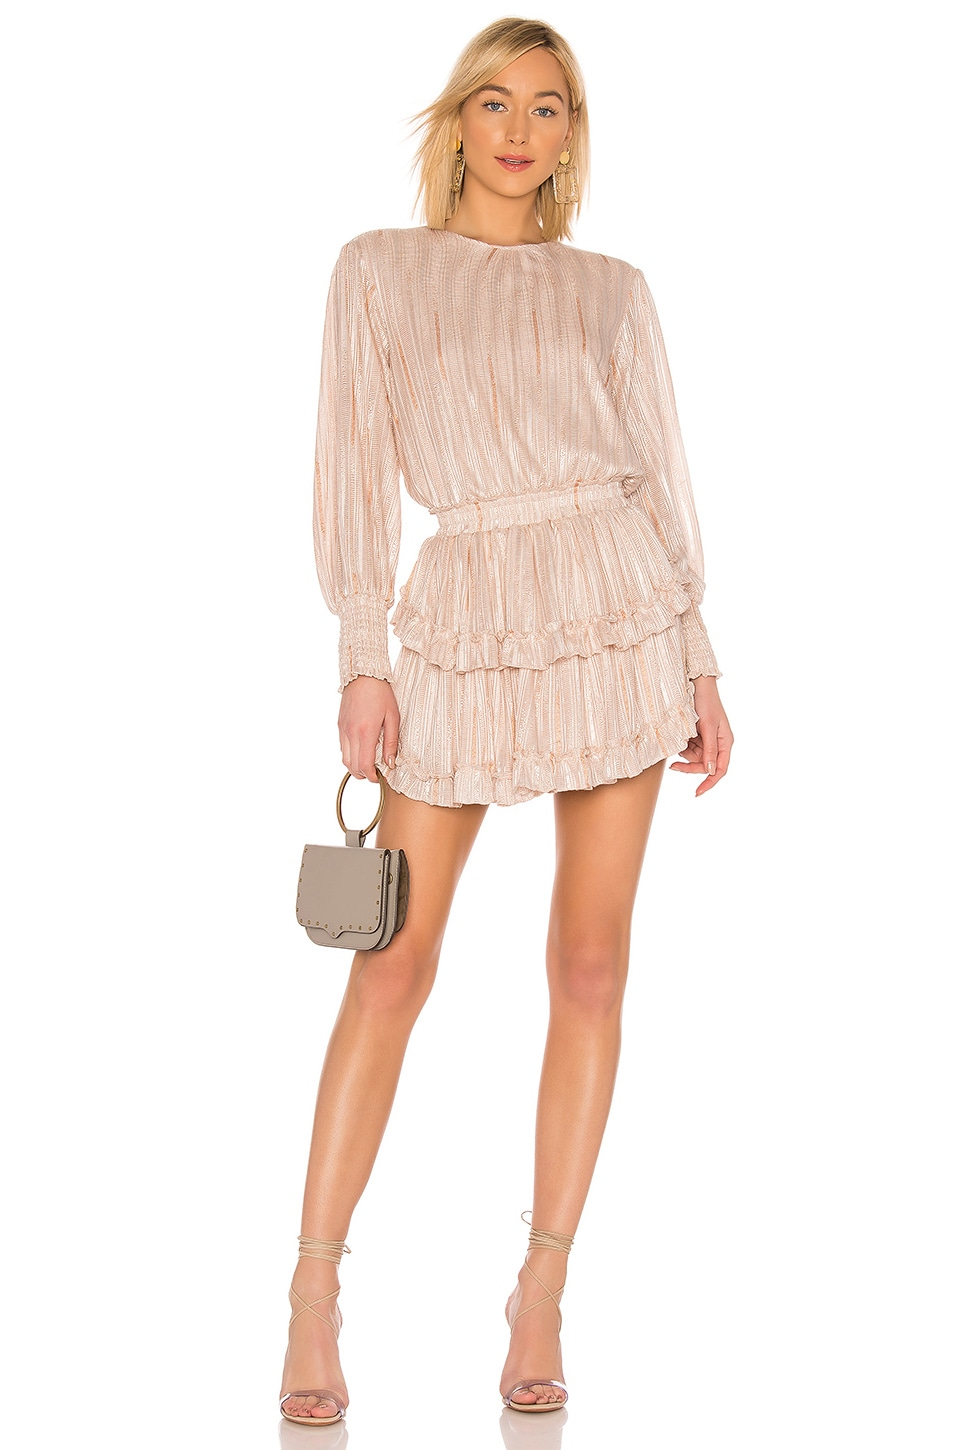 MISA Los Angeles Katia Dress in Blush Stripe